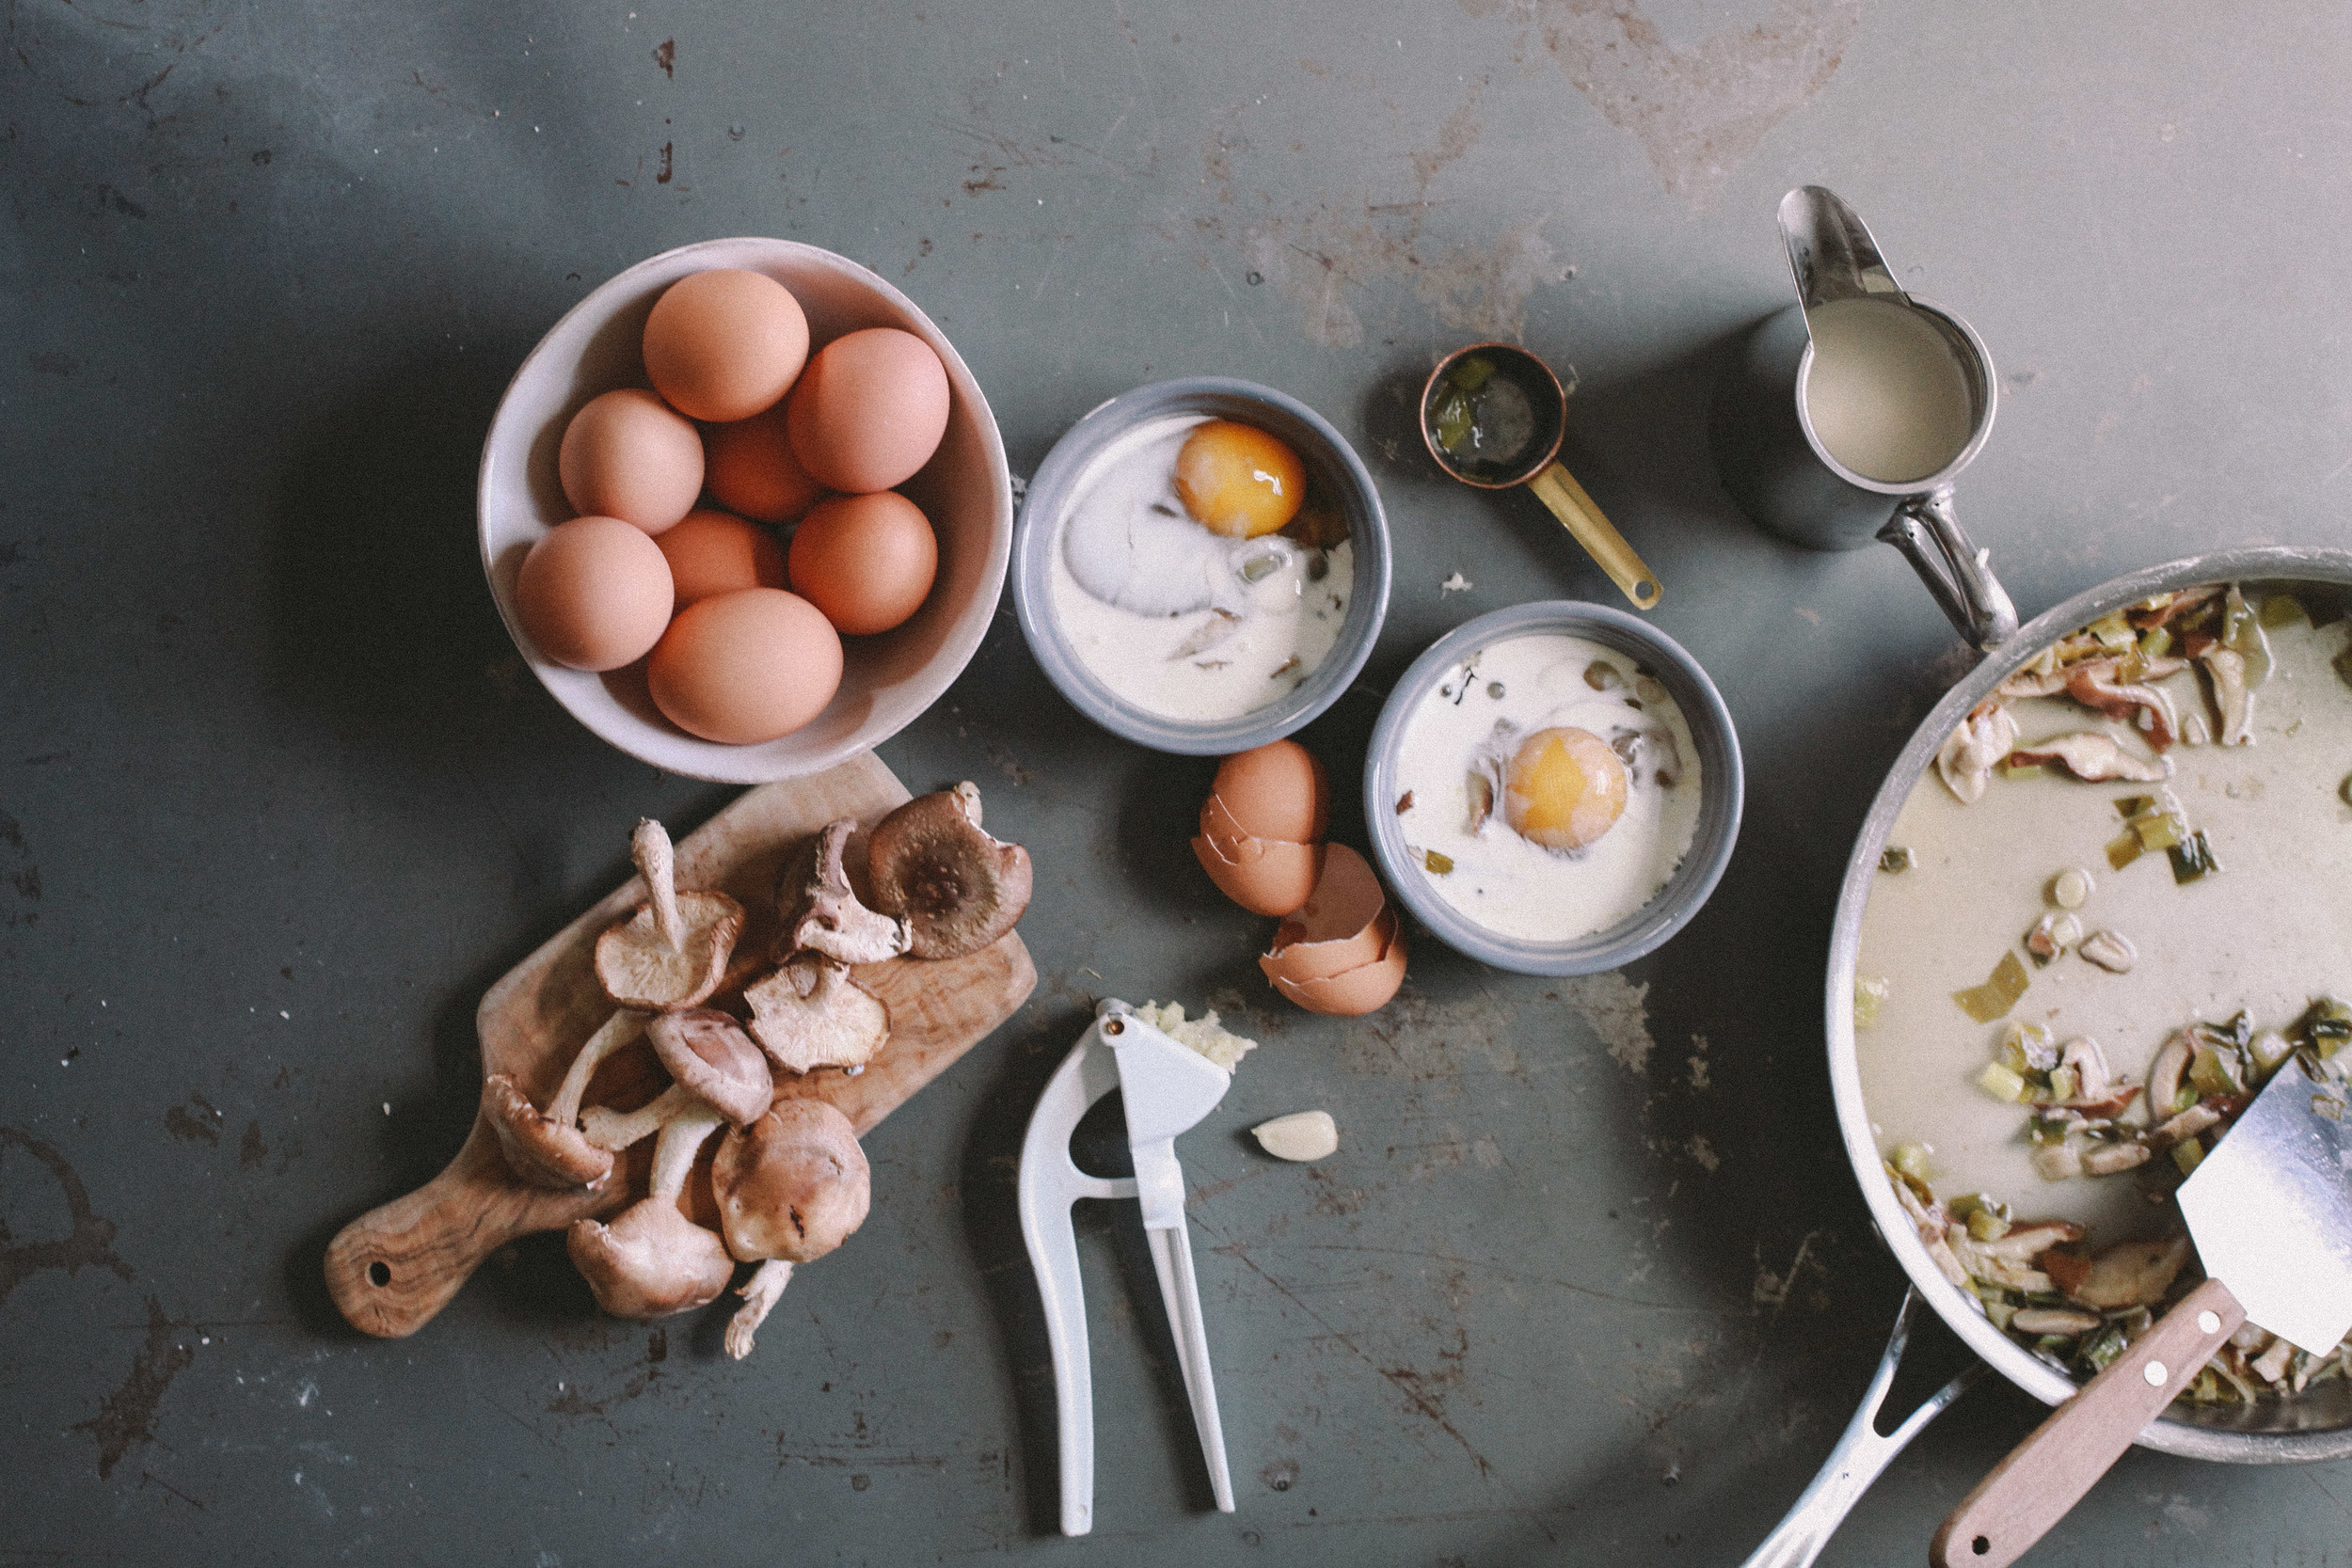 We decided to prepare Eggs en Cocotte with mushrooms and spring onions as a savory brunch item for mom. Our favorite ingredient in the eggs? Wine. It gave the dish such a strong, bold flavor.